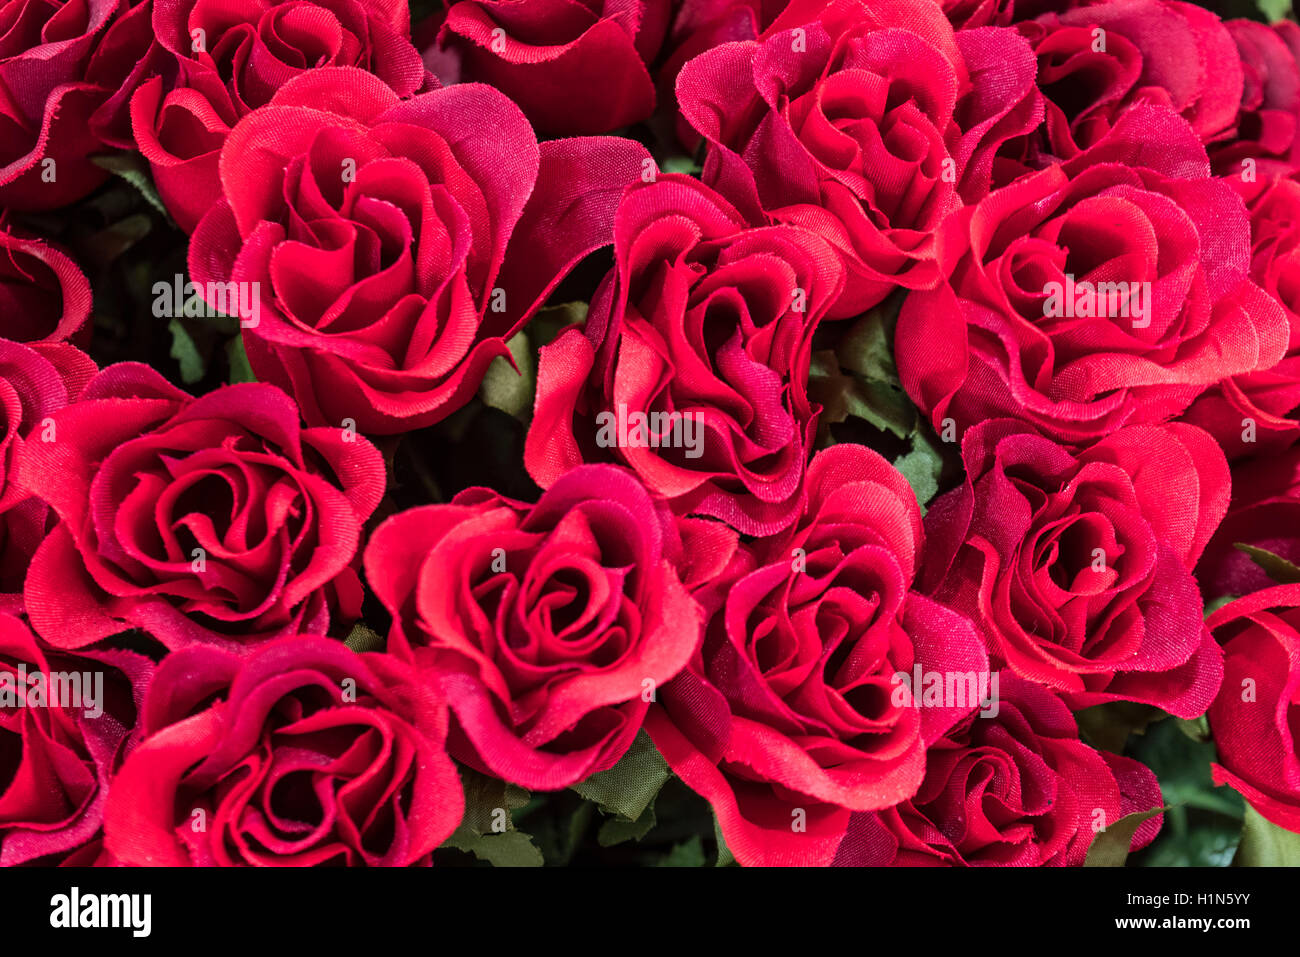 Silk Flowers , Roses,  Old City Center Nice, Vieille Nice, Alpes Maritimes, Provence, French Riviera, Mediterranean, Stock Photo